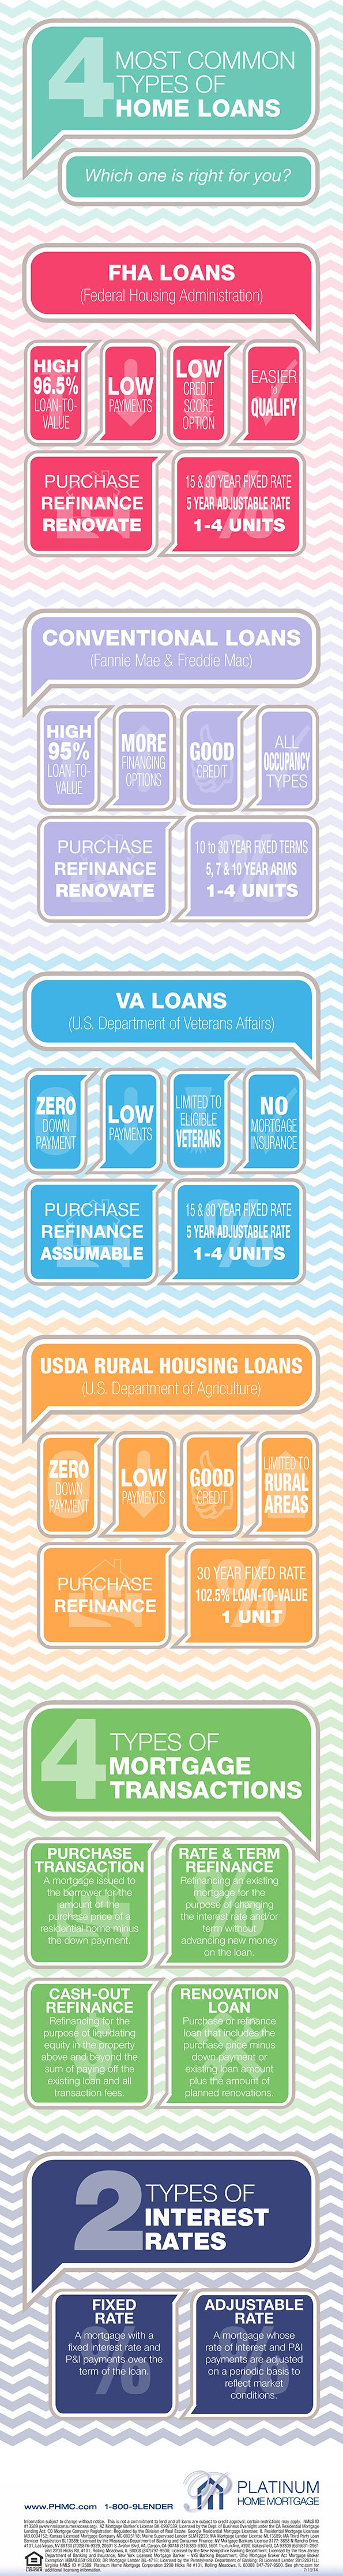 Types Of Home Loans Infographic Fha Conventional Va Usda Purchase Refinance Fixed Rate And With Images Real Estate Infographic Real Estate Buyers Real Estate Tips